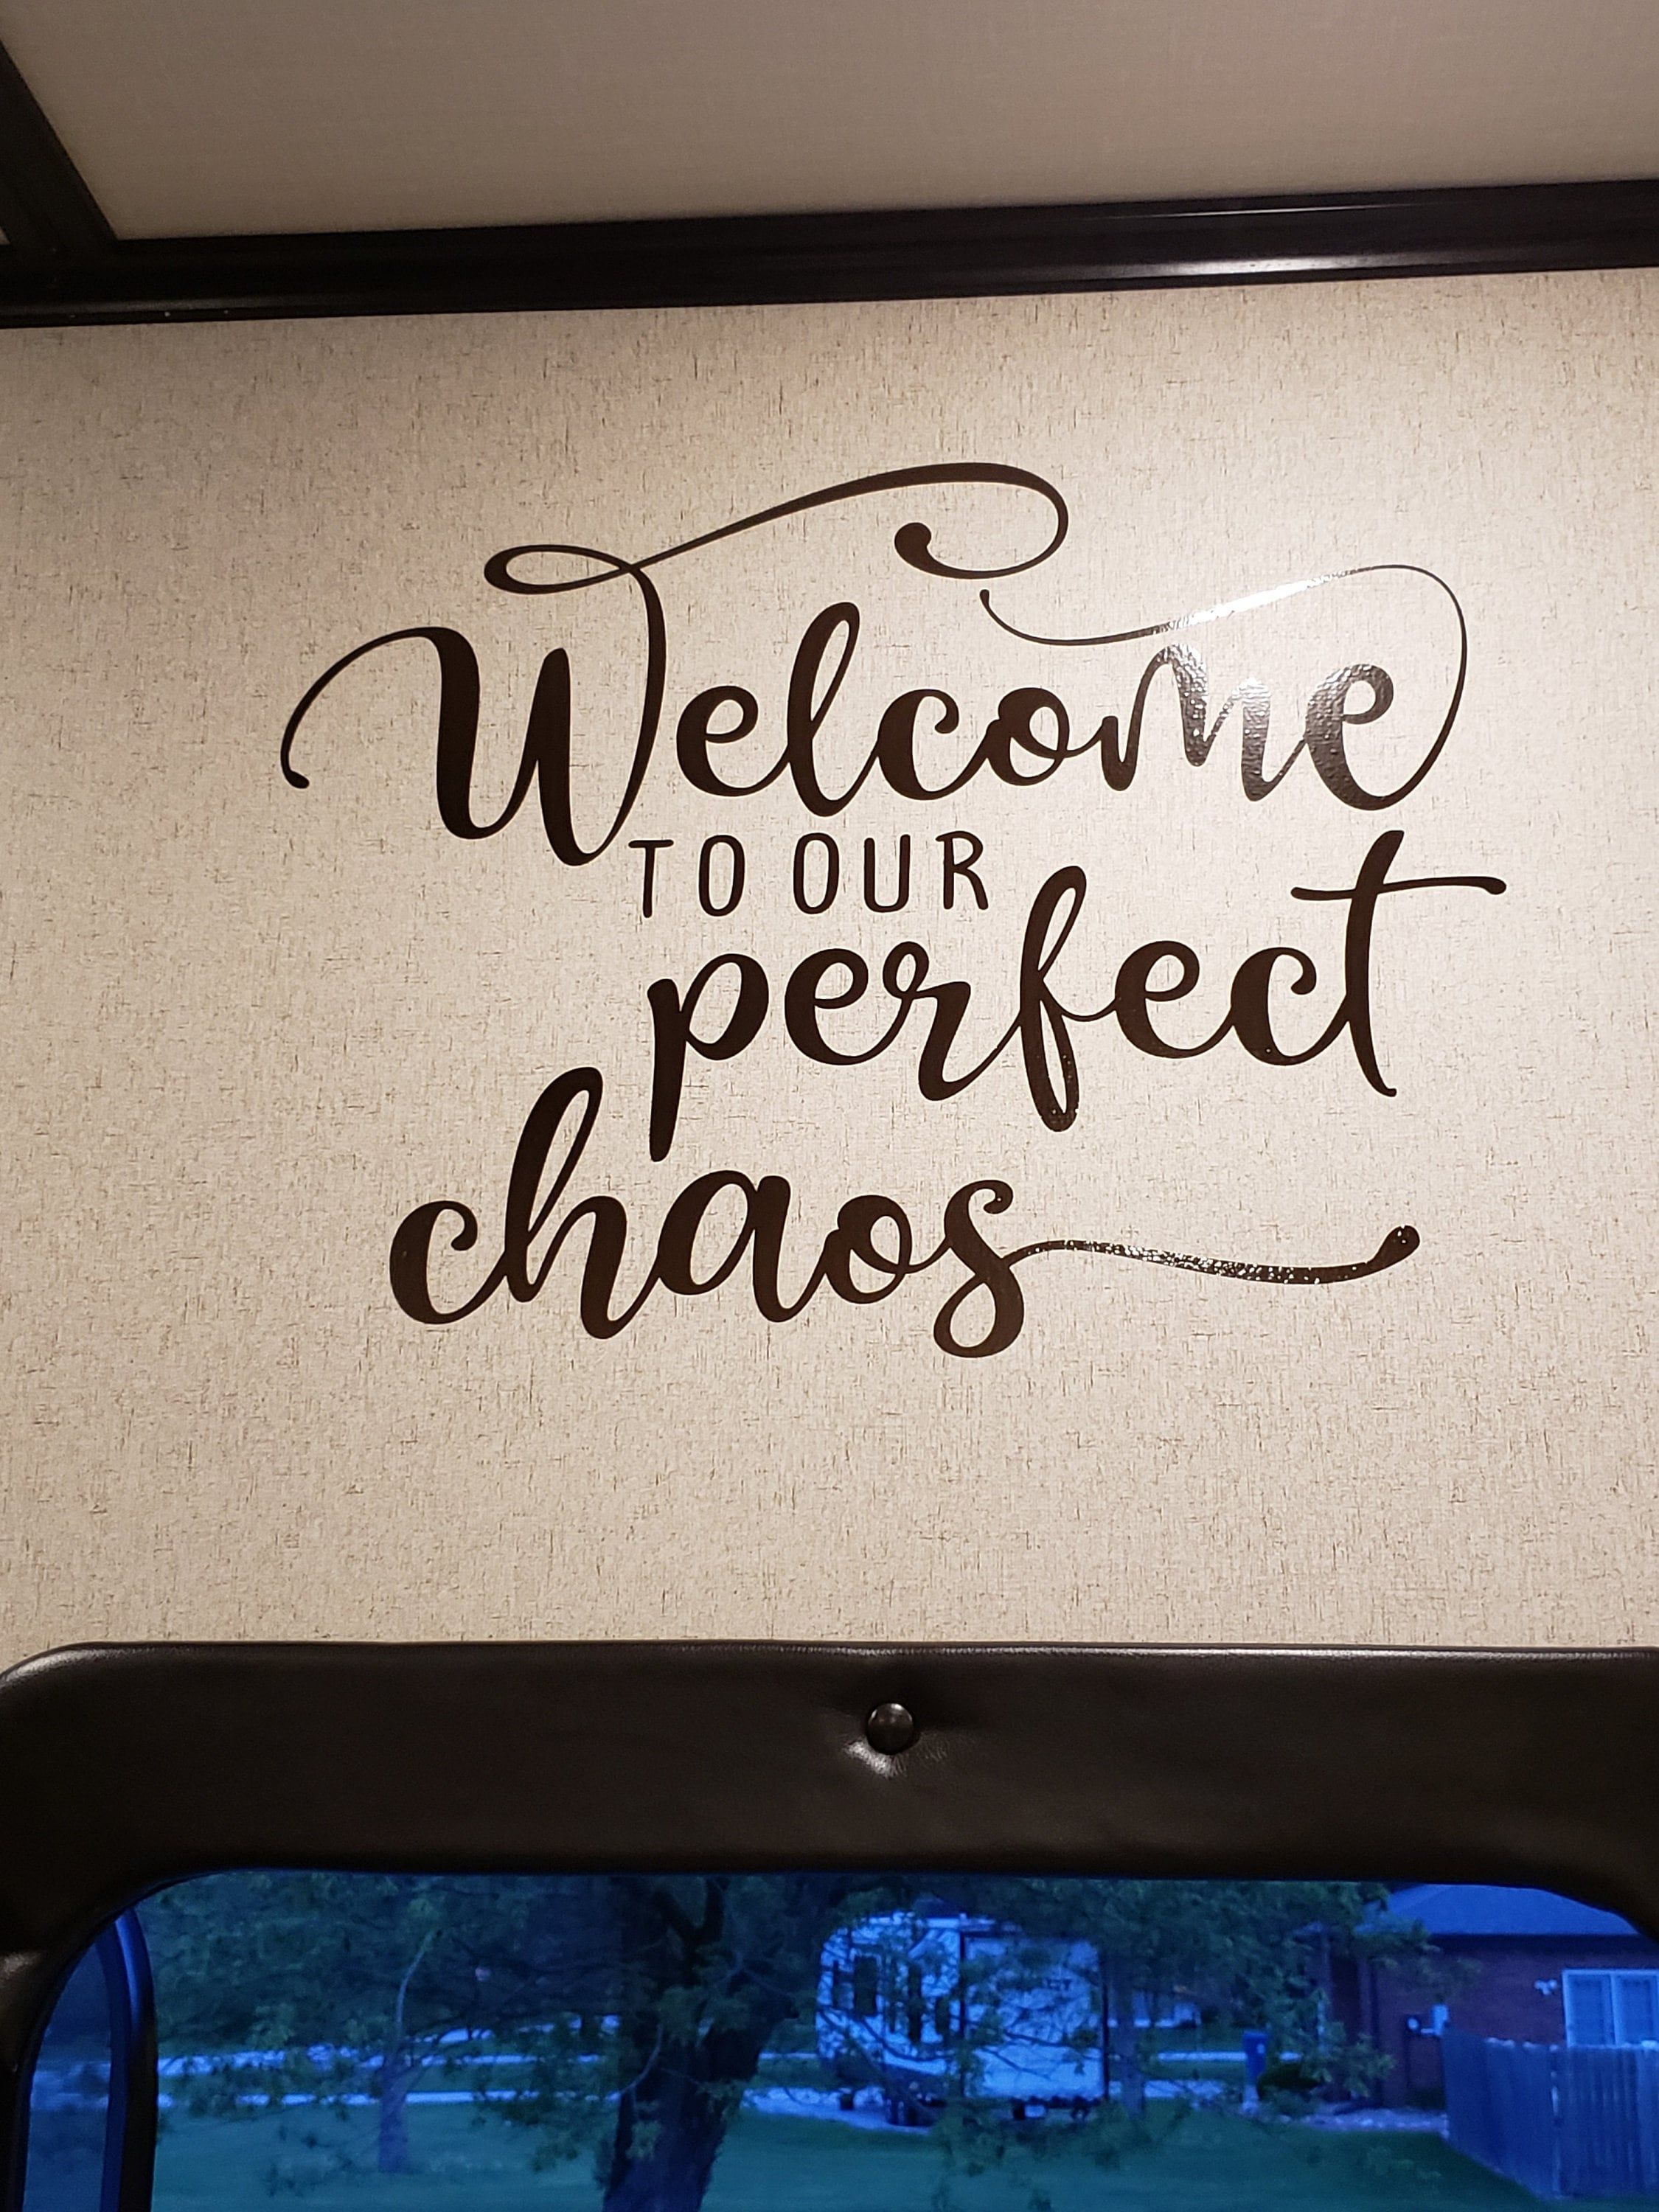 Welcome to our perfect chaos camping vinyl decal camper decal rv vinyl decal sticker camper decor trailer sticker vinyl lettering decal